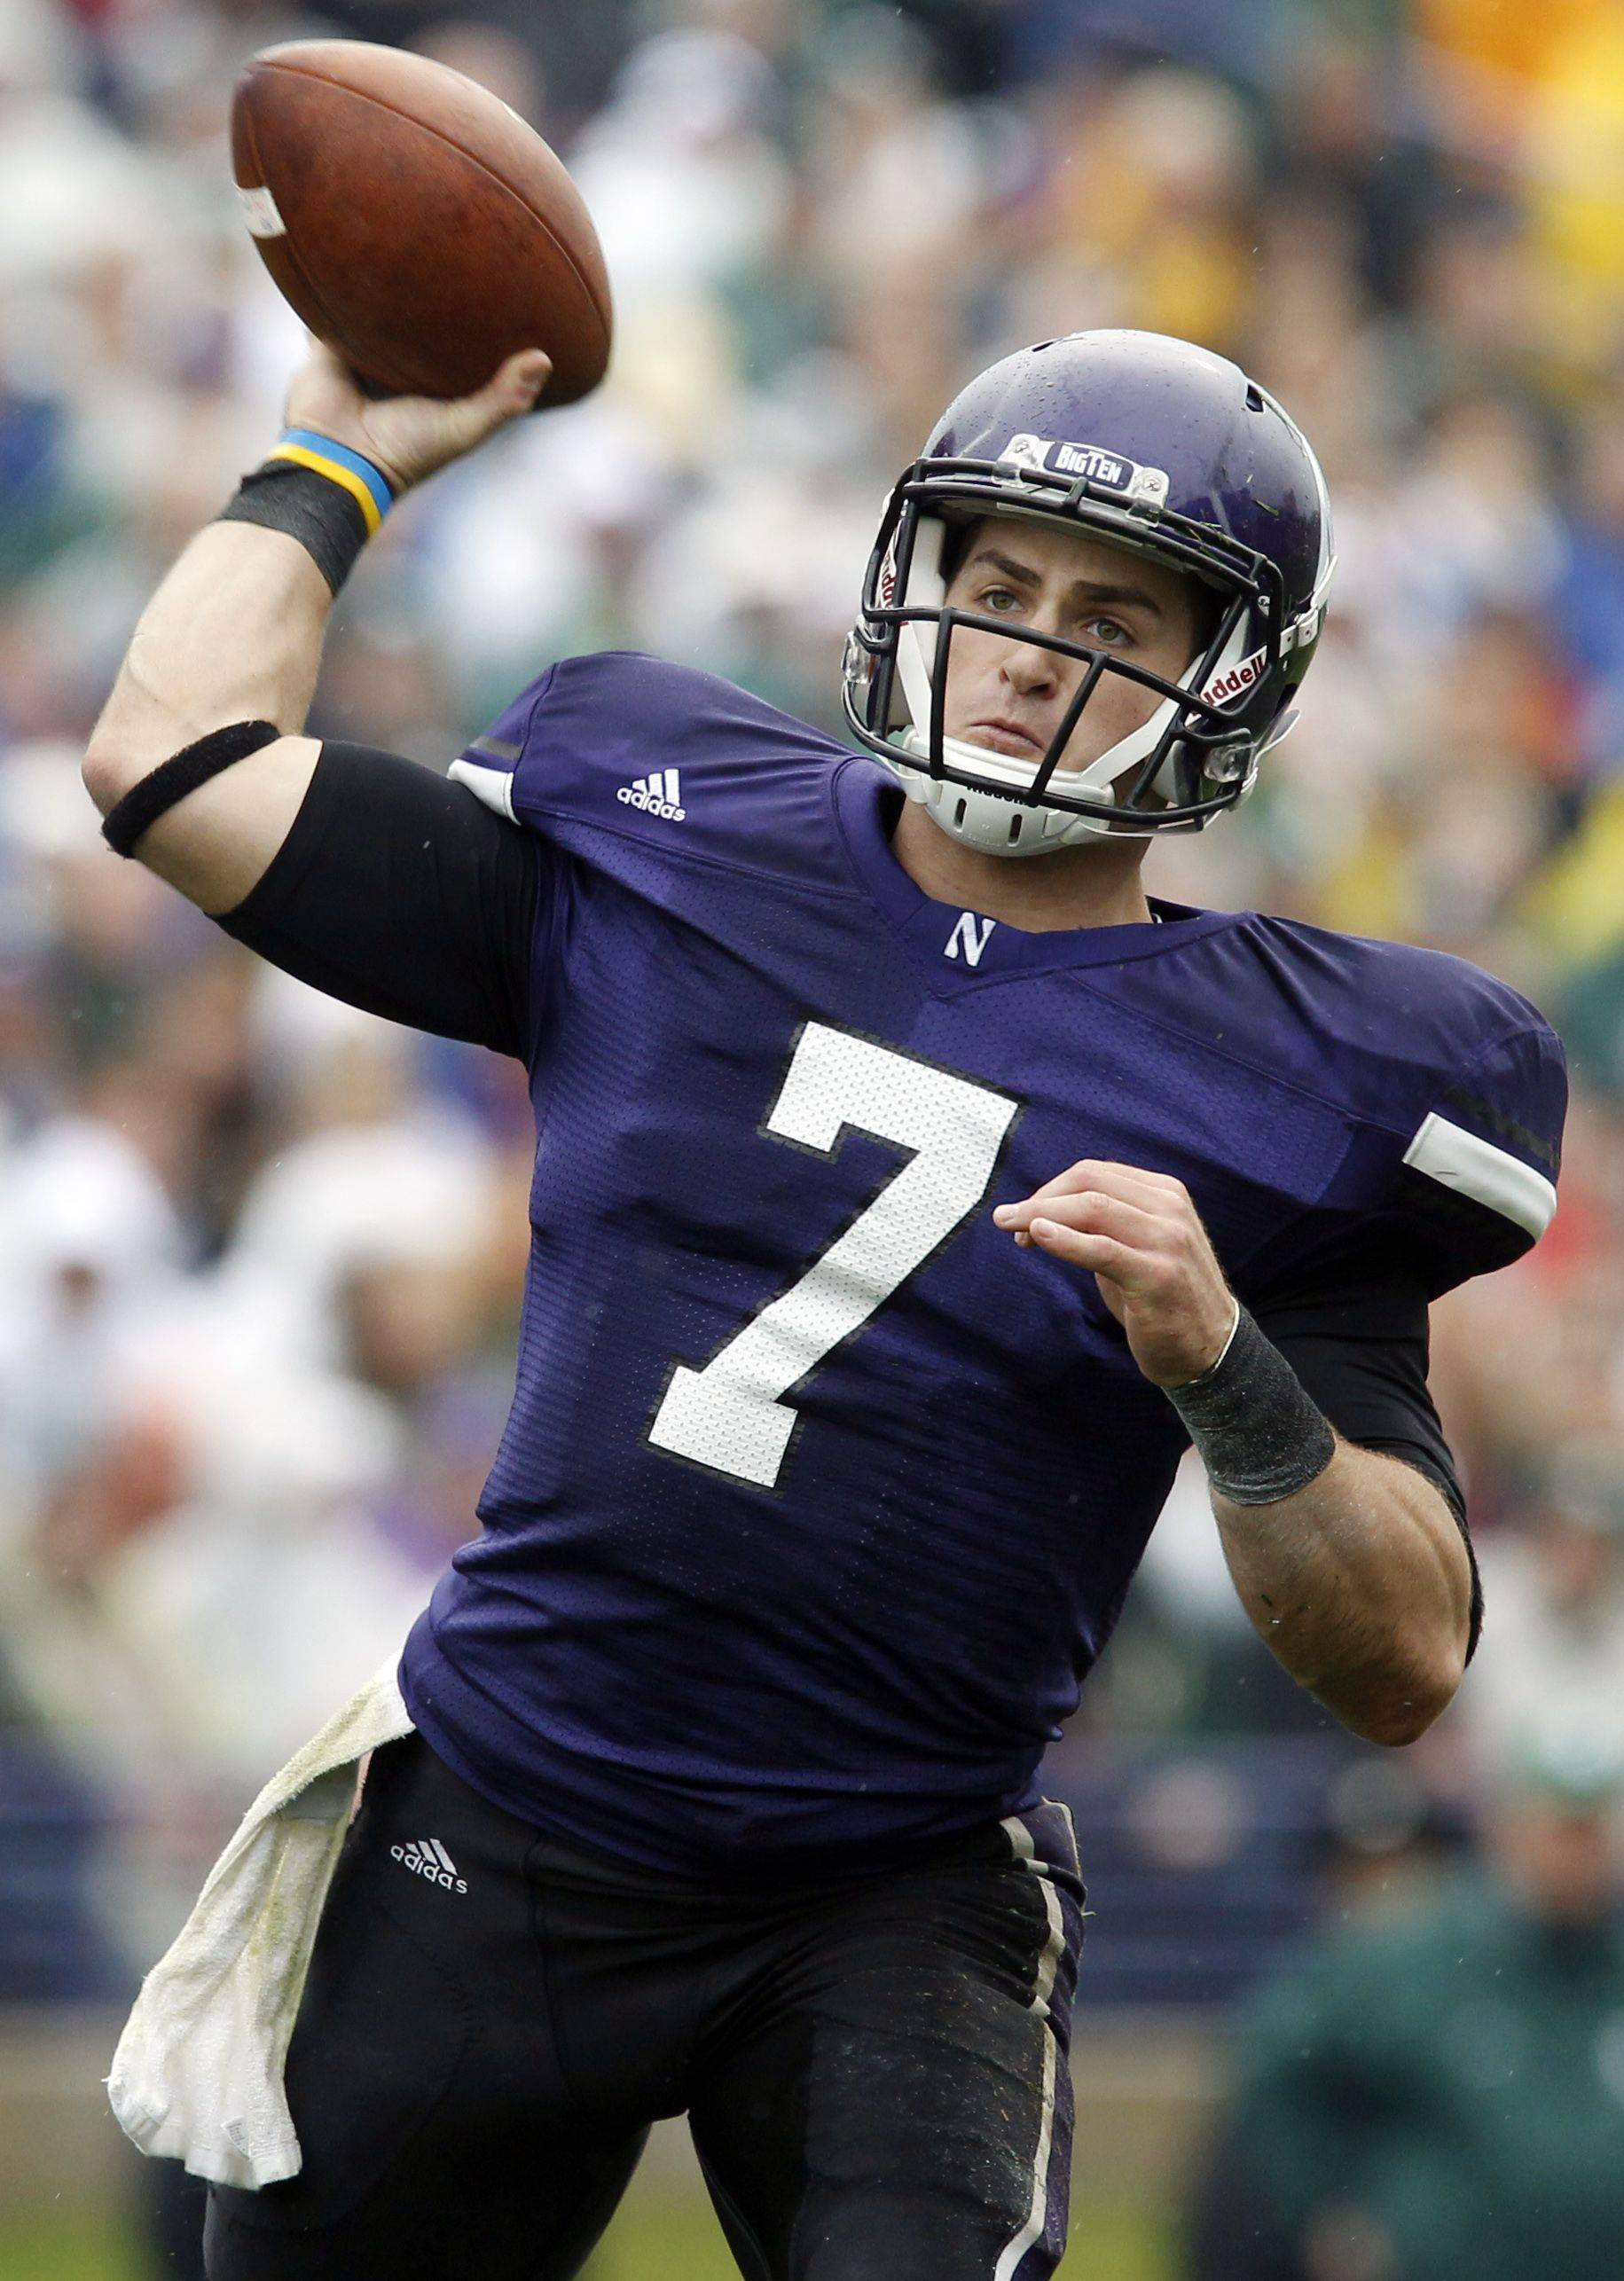 Northwestern quarterback Dan Persa hopes very soon to be completely recovered from his Achilles' tendon surgery.